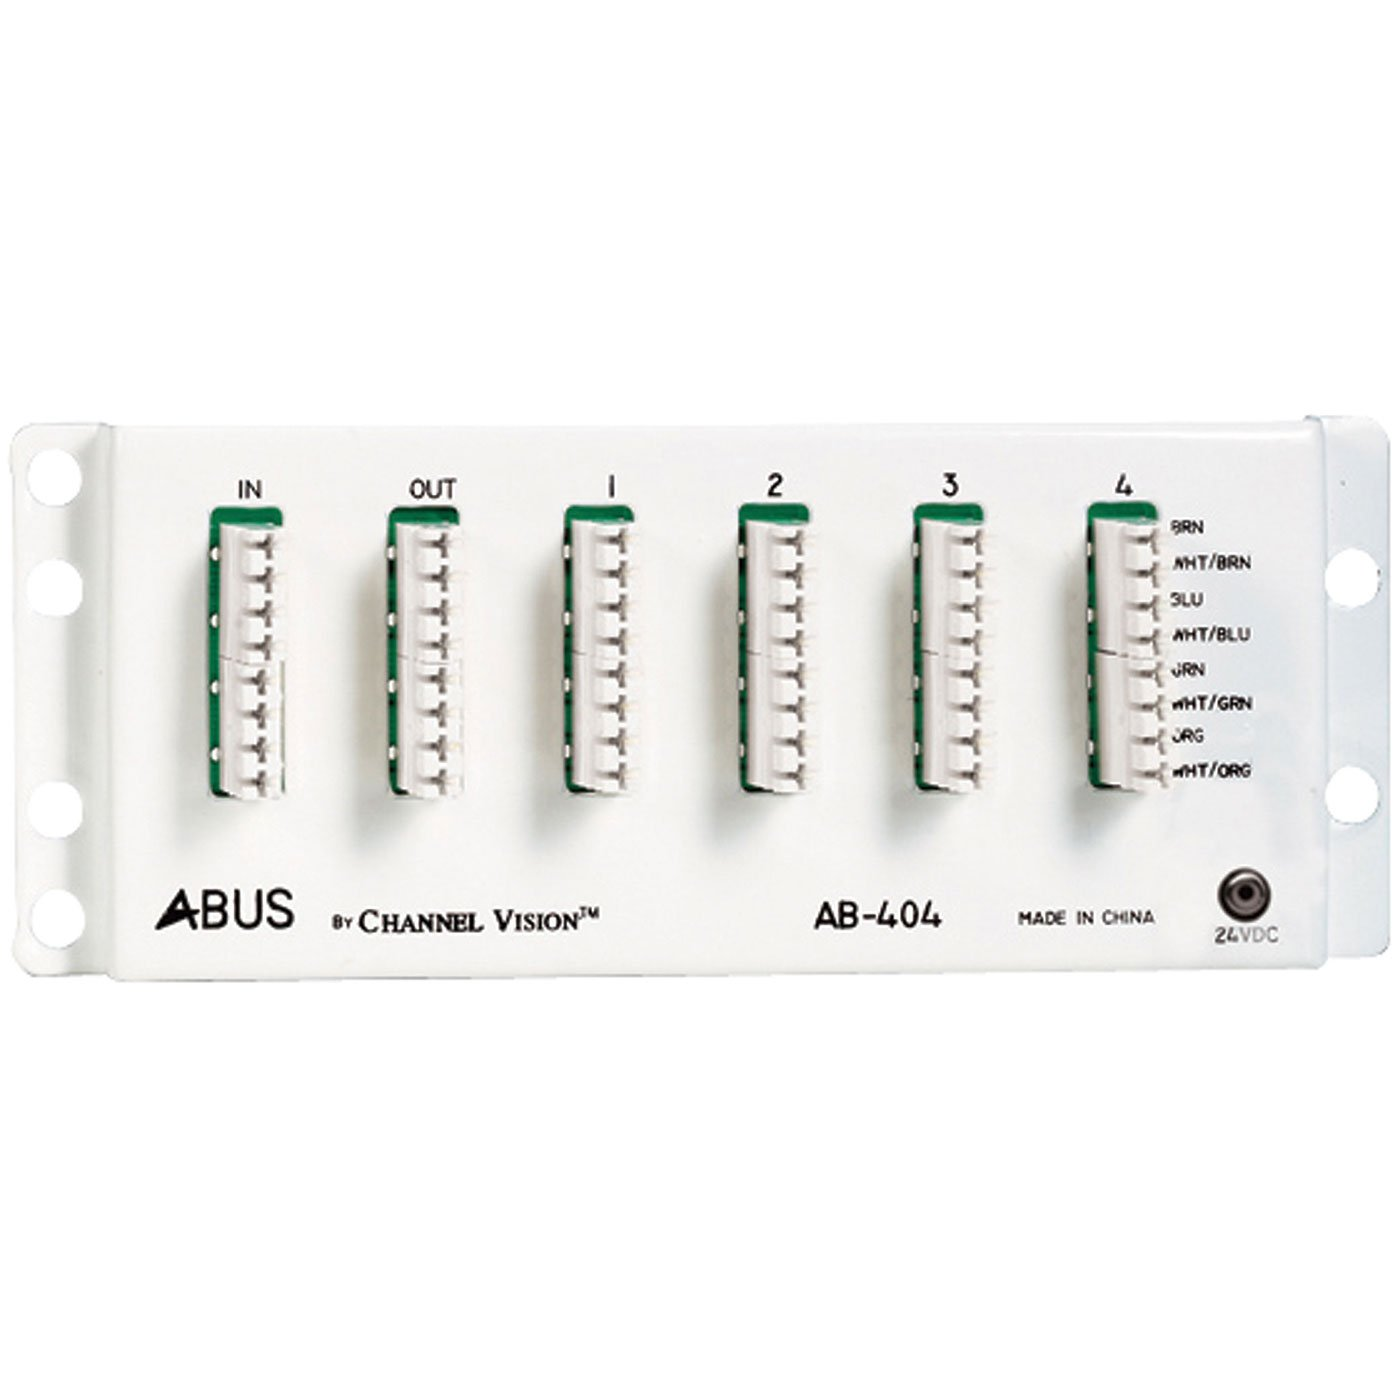 CHANNEL VISION AB-404 A-bus Panel Distribution Module